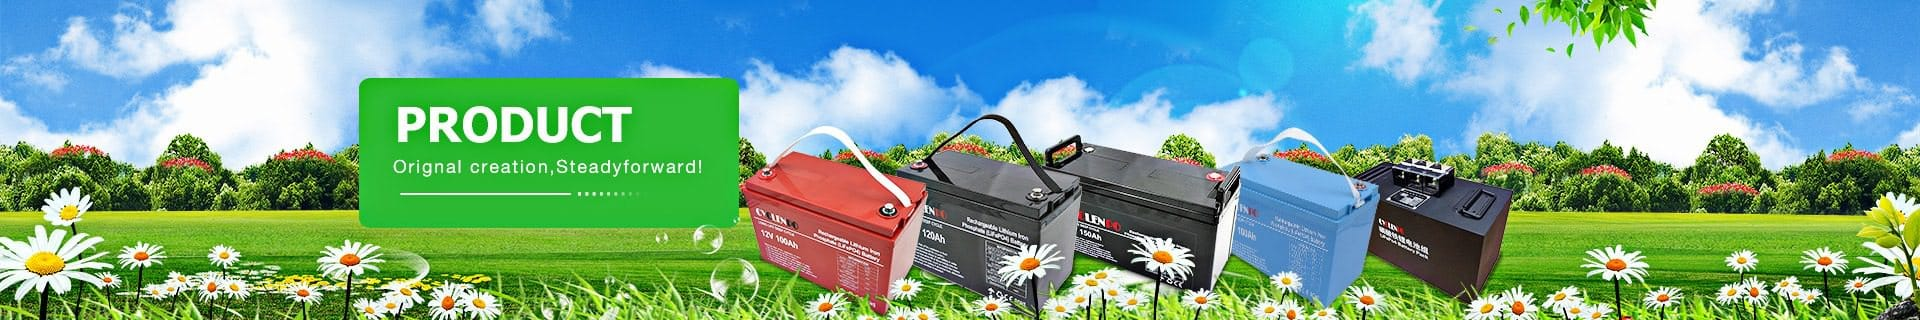 12v 35ah deep cycle battery, 12v 35ah lithium ion battery, scooter batteries 12v 35ah